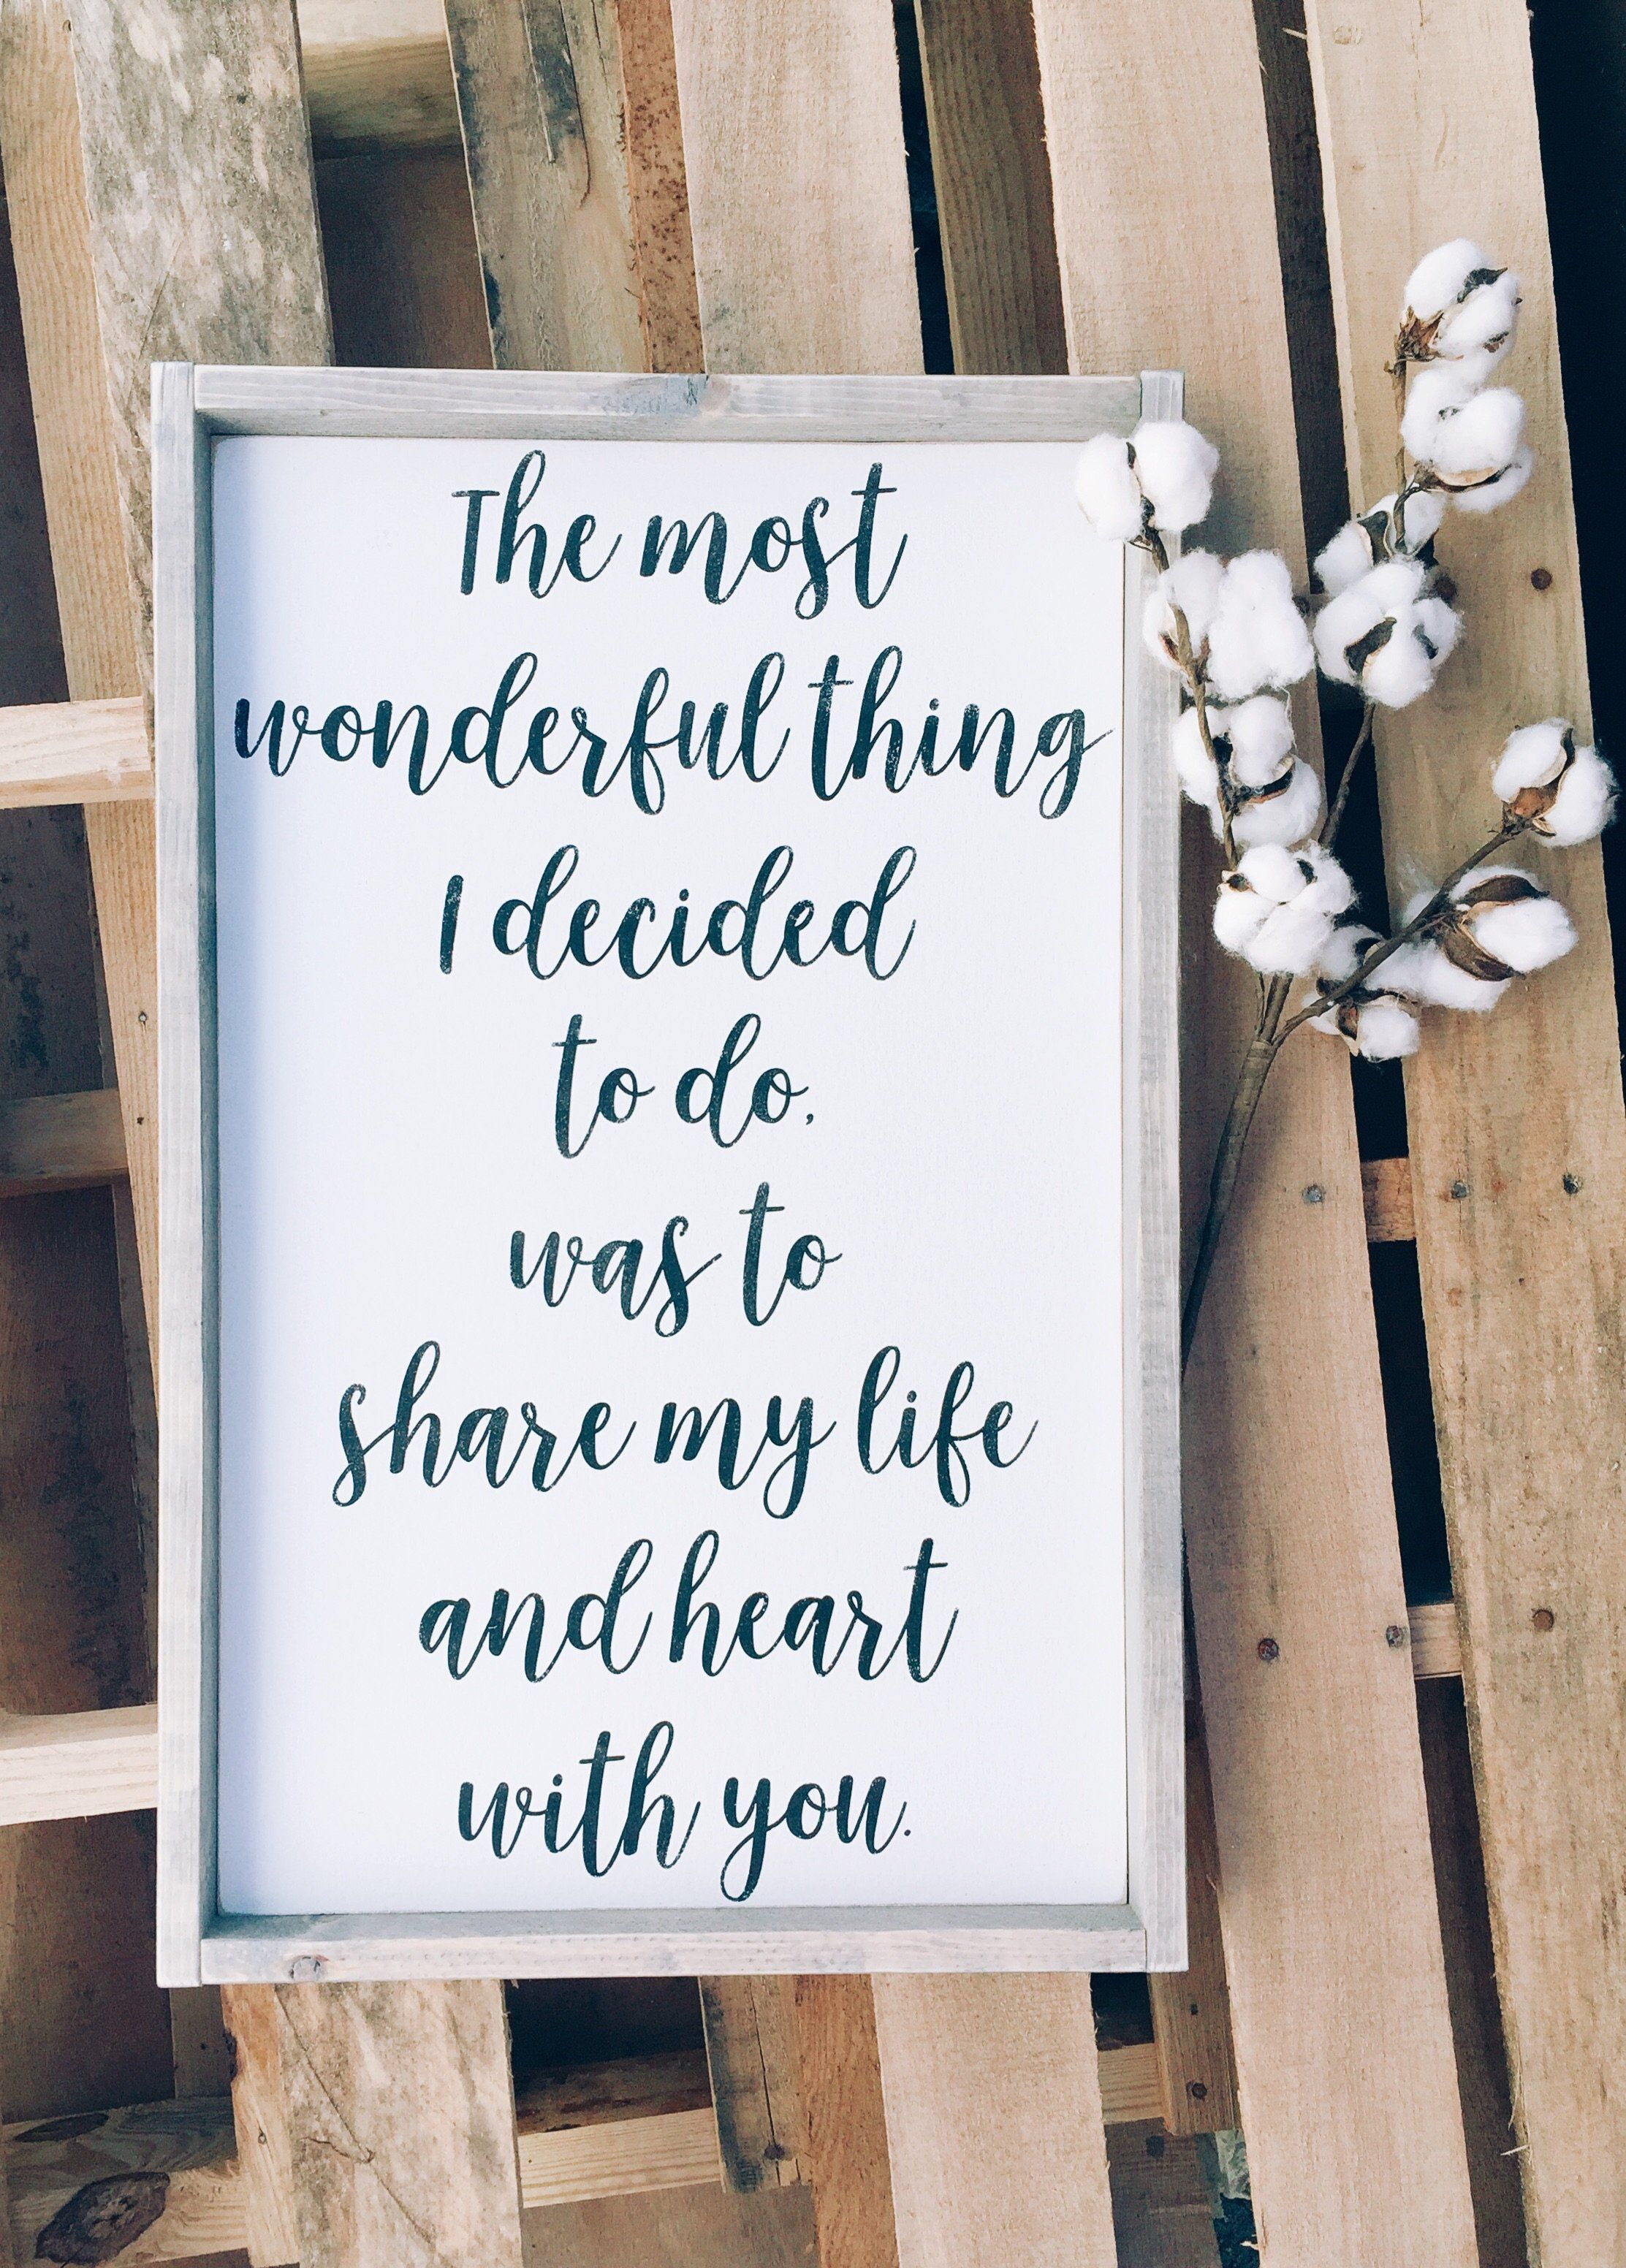 The Most Wonderful Thing | Wedding Details | Pinterest | Cricut ...